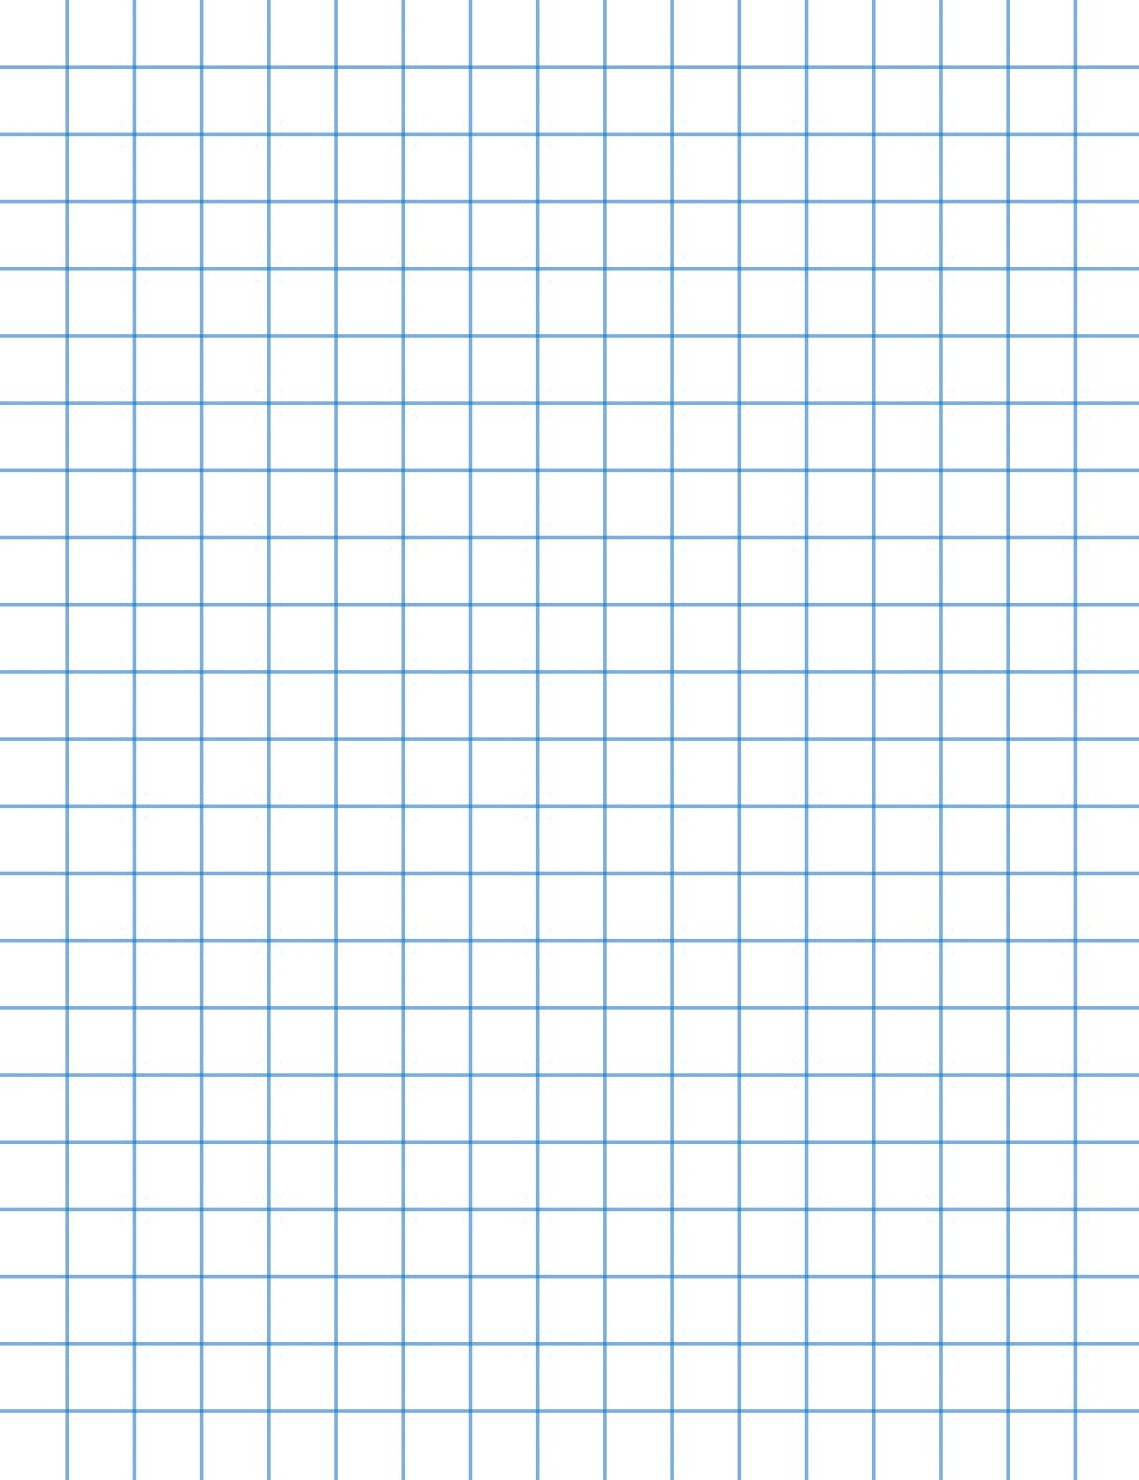 8-1/2 X 11 Graph Paper, 1/2 Rule, White, 16#, Two Sides - 500/Ream